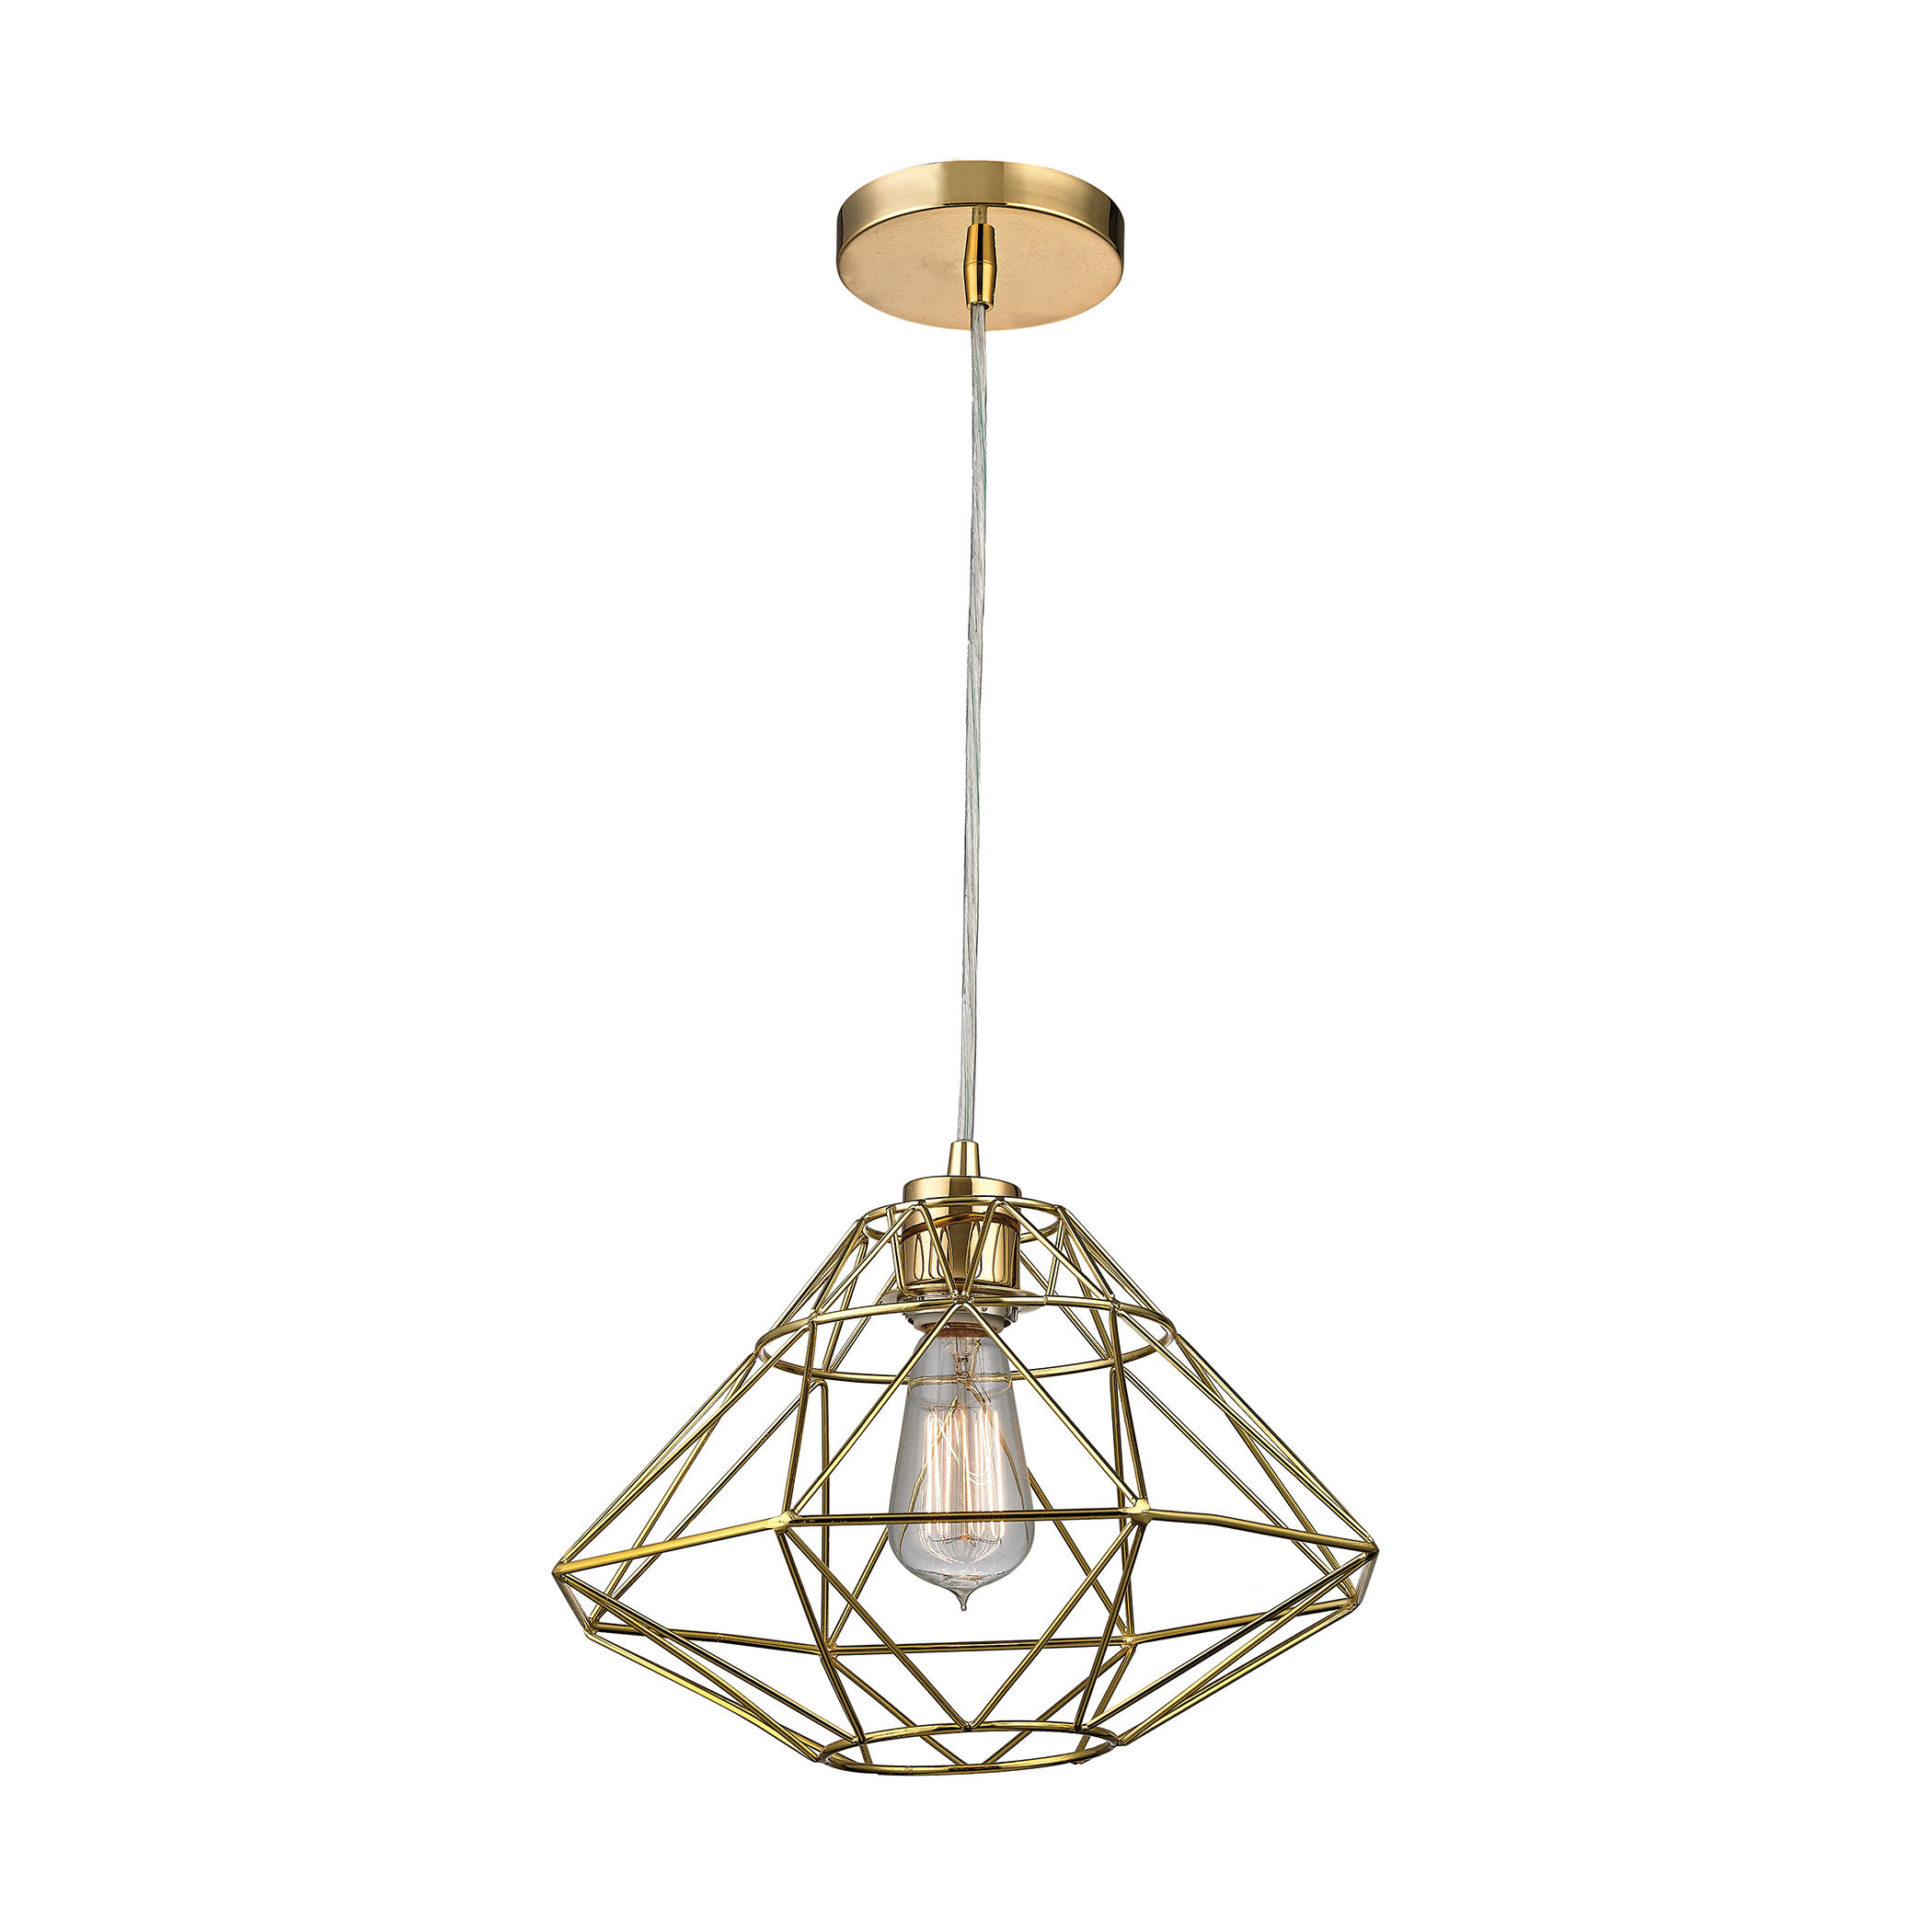 Langley Street Alcorn Lake 1 Light Geometric Pendant In Hydetown 1 Light Single Geometric Pendants (View 9 of 30)